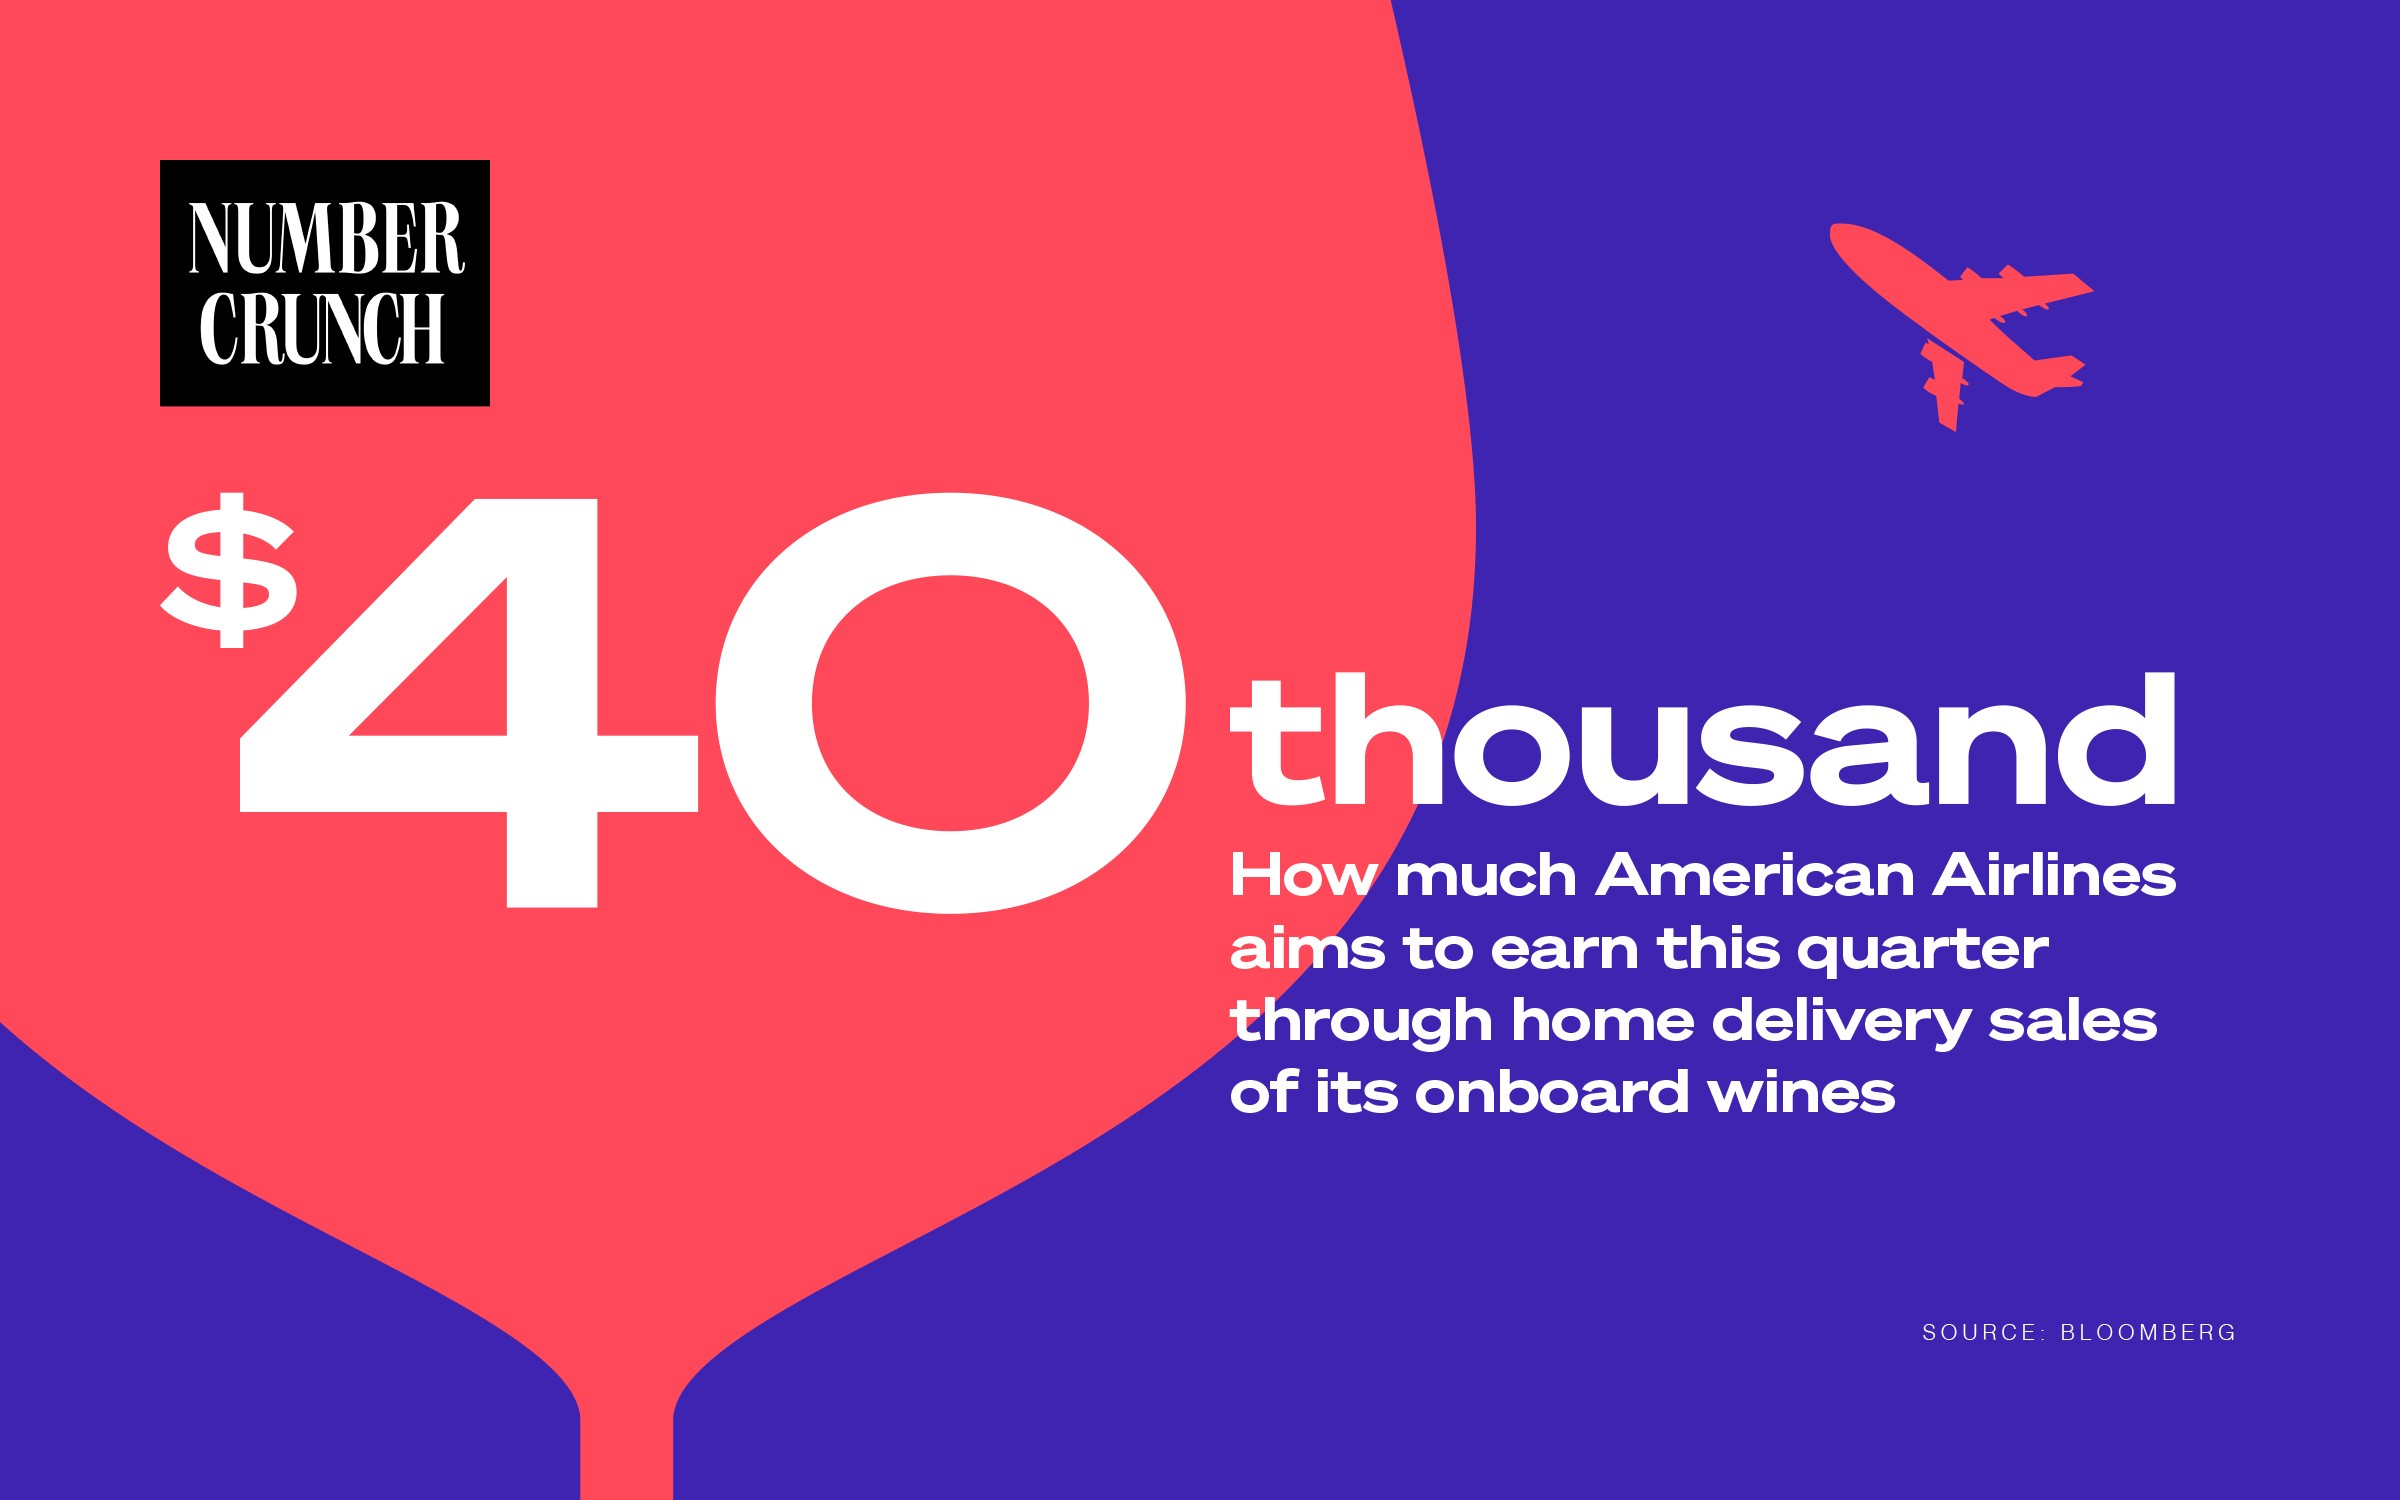 $40,000: How much American Airlines aims to earn this quarter through home delivery sales of its onboard wine. (Bloomberg)